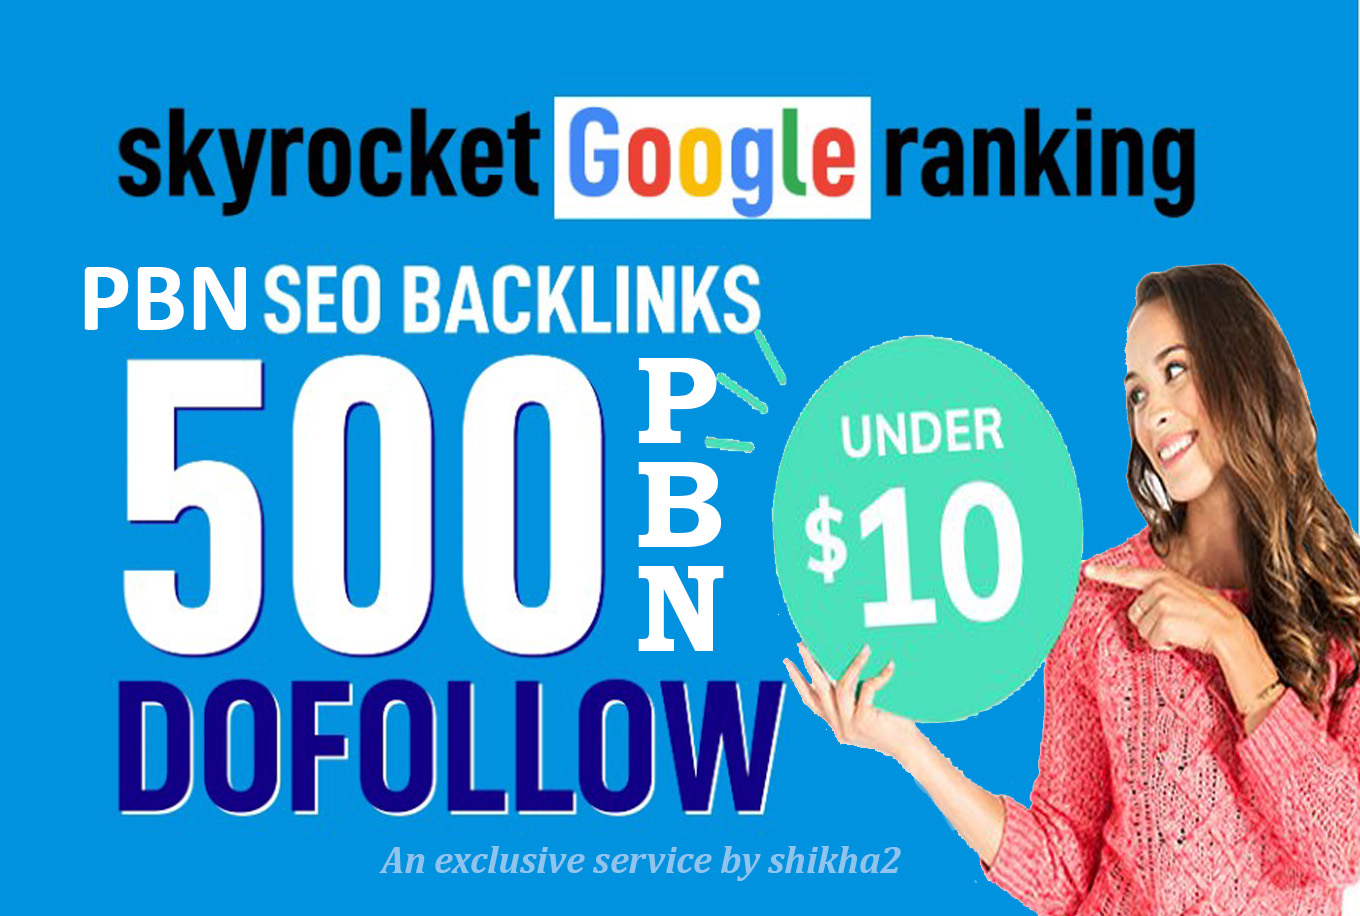 Create 500 Super Web 2.0 Blogs and post dofollow bacl...